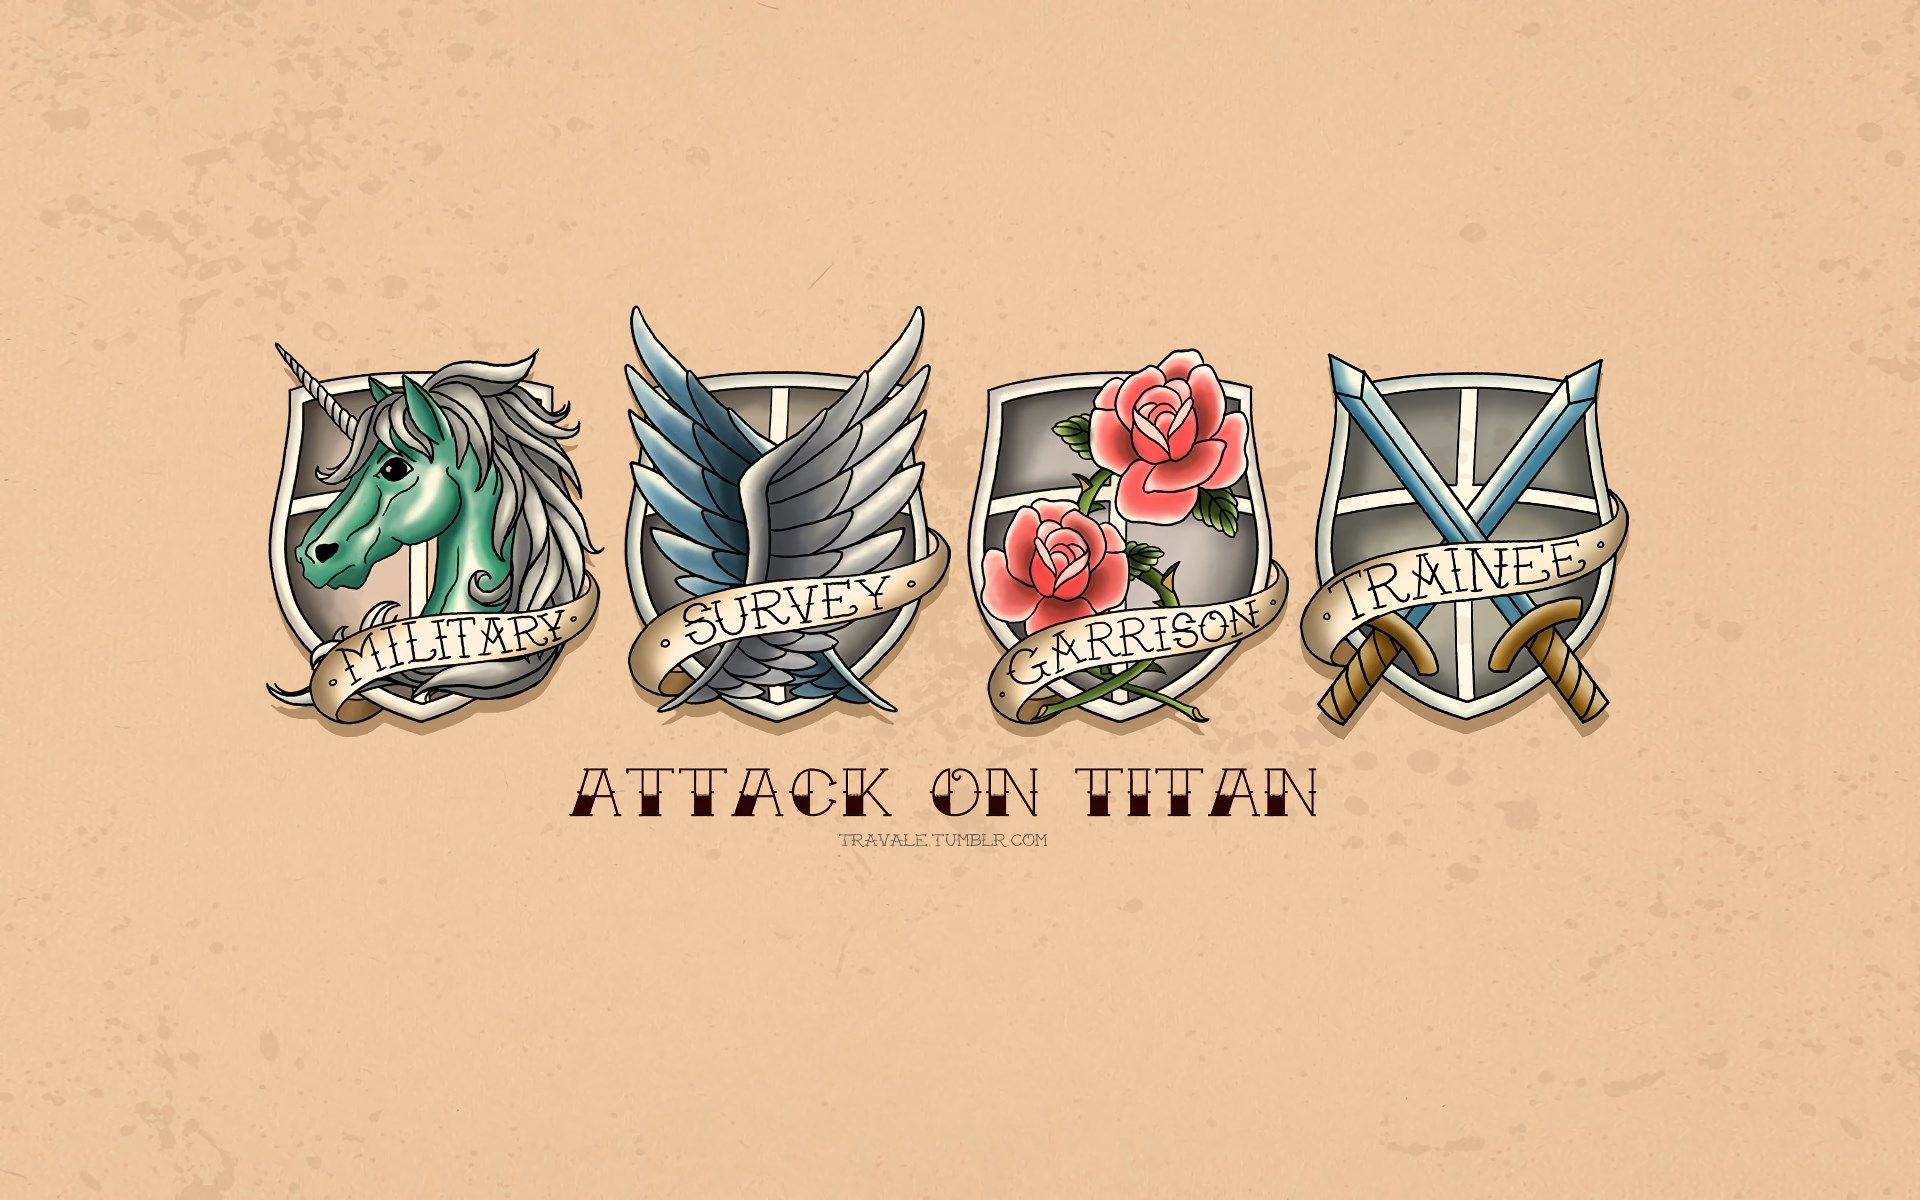 Beautiful Pictures Of Attack On Titan Attack On Titan Tattoo Attack On Titan Attack On Titan Anime